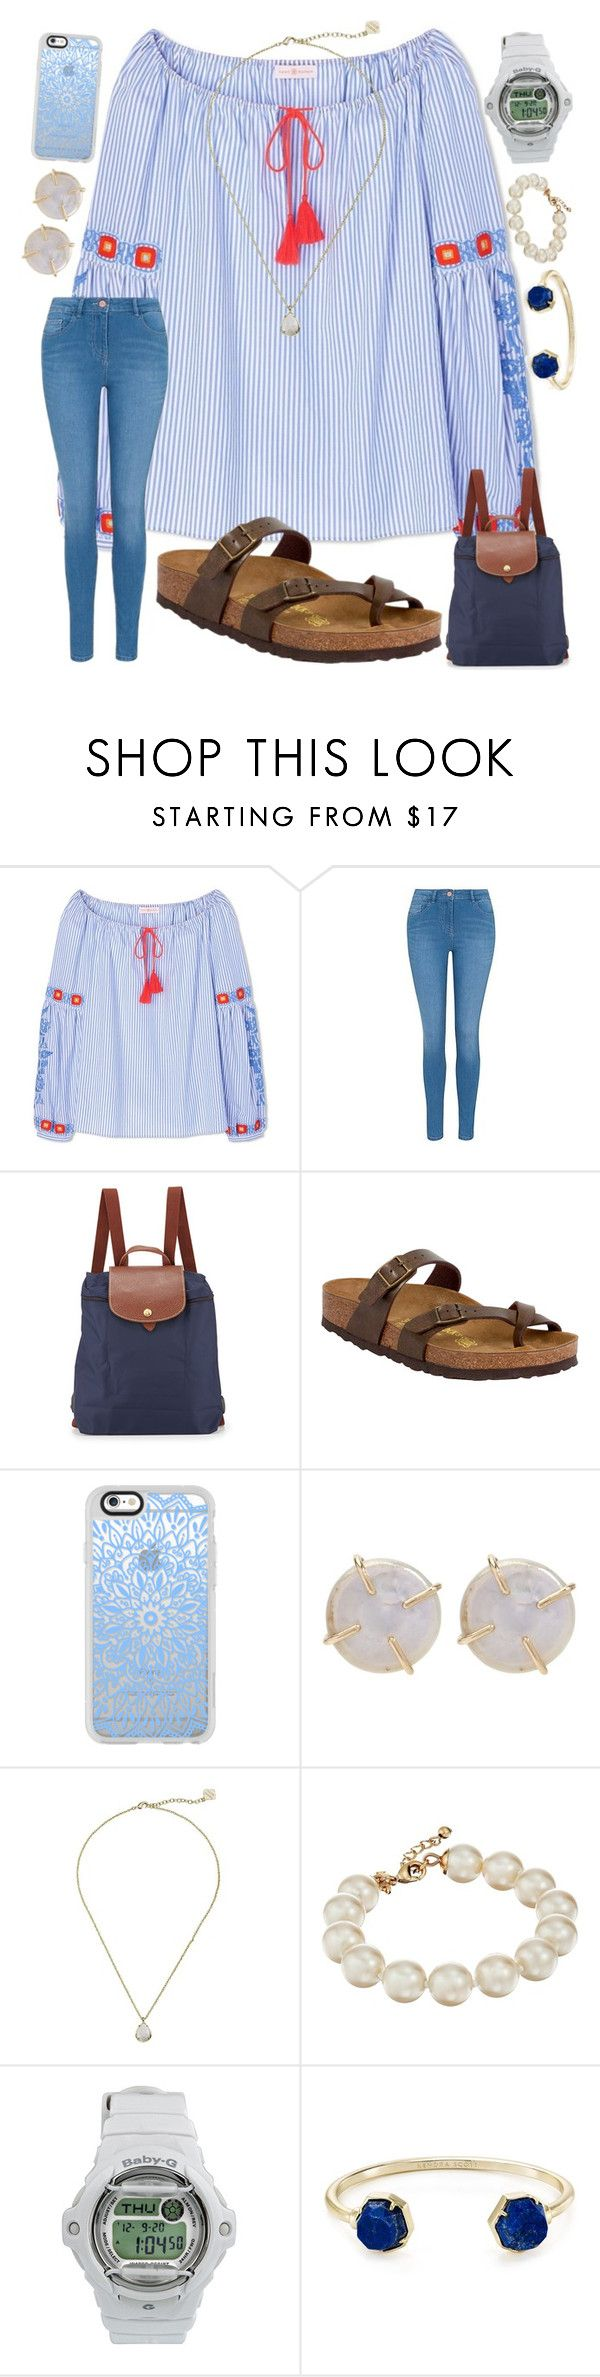 """""""school…"""" by ashton7276 ❤ liked on Polyvore featuring Tory Burch, George, Longchamp, Birkenstock, Casetify, Melissa Joy Manning, Kendra Scott, Kate Spade and Casio"""